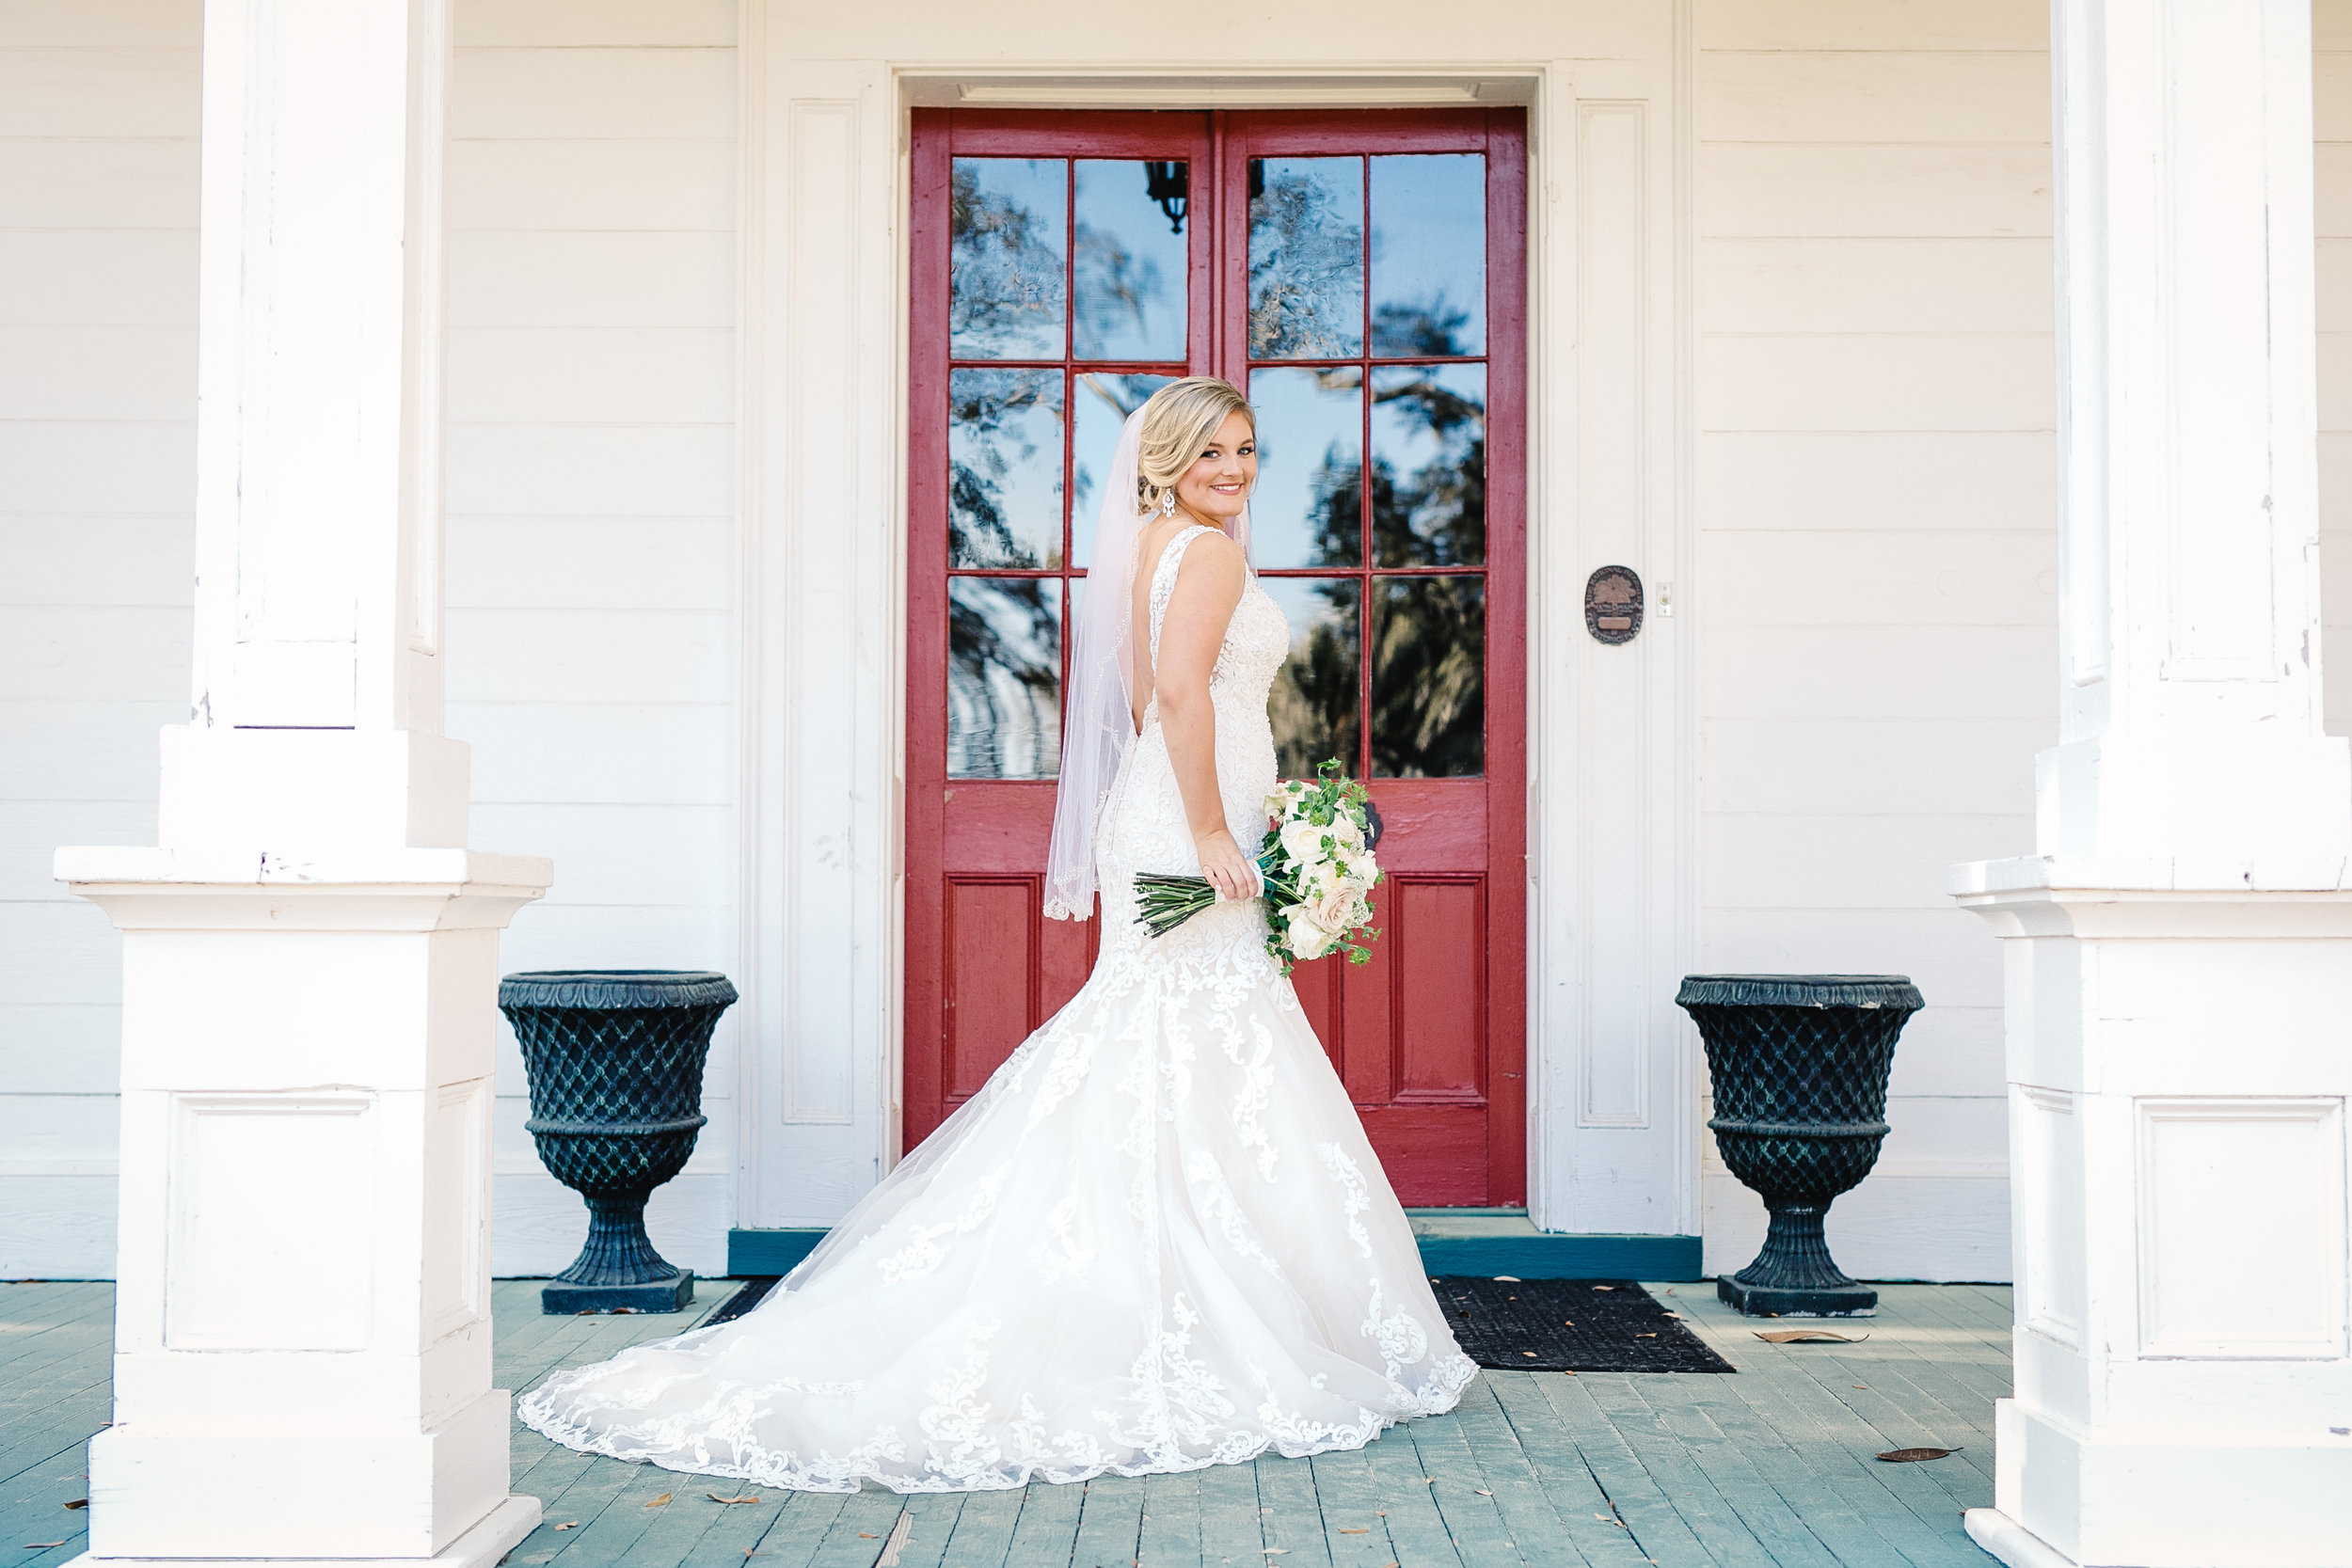 Cameron's Bridal Portrait Session at Sunnyside Plantation | Palmetto State Weddings